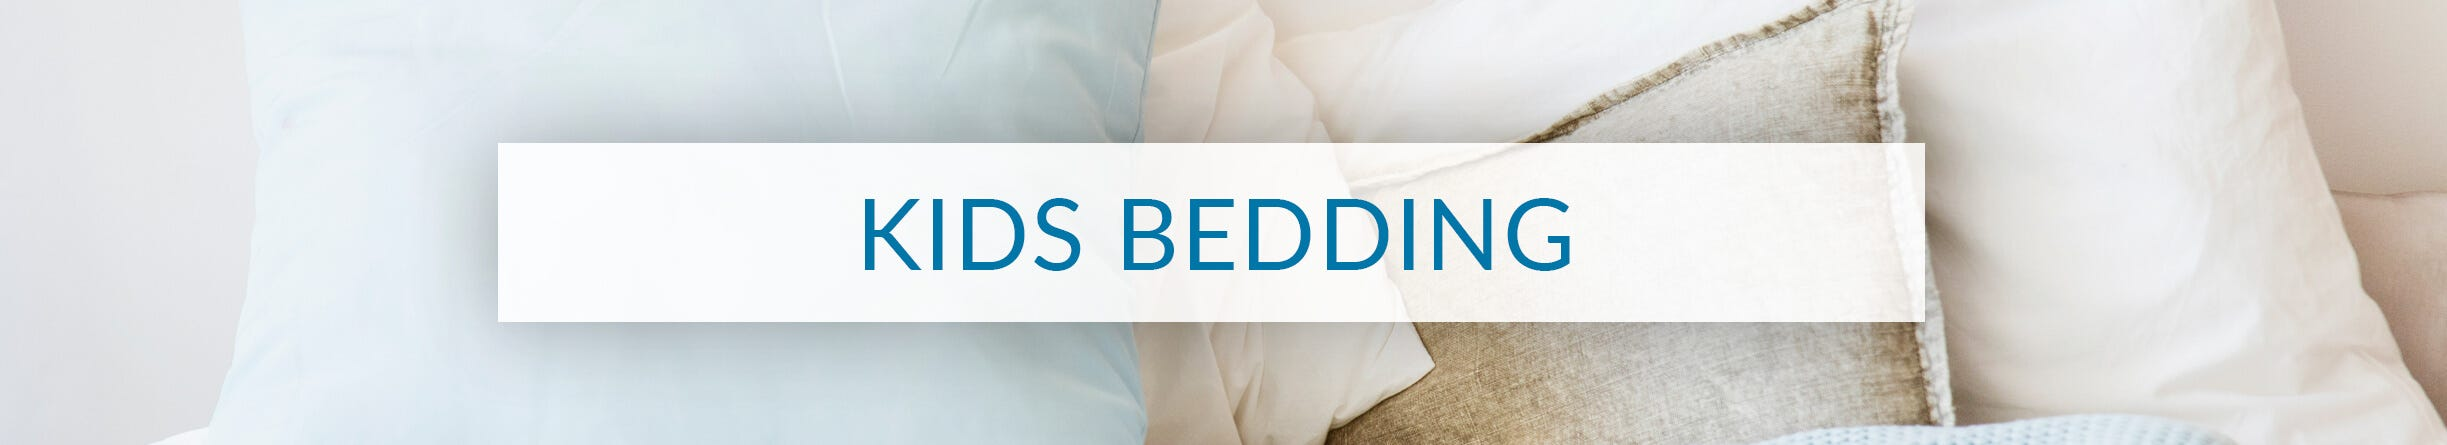 Shop Youth Bedding and Linens at US-Mattress.com